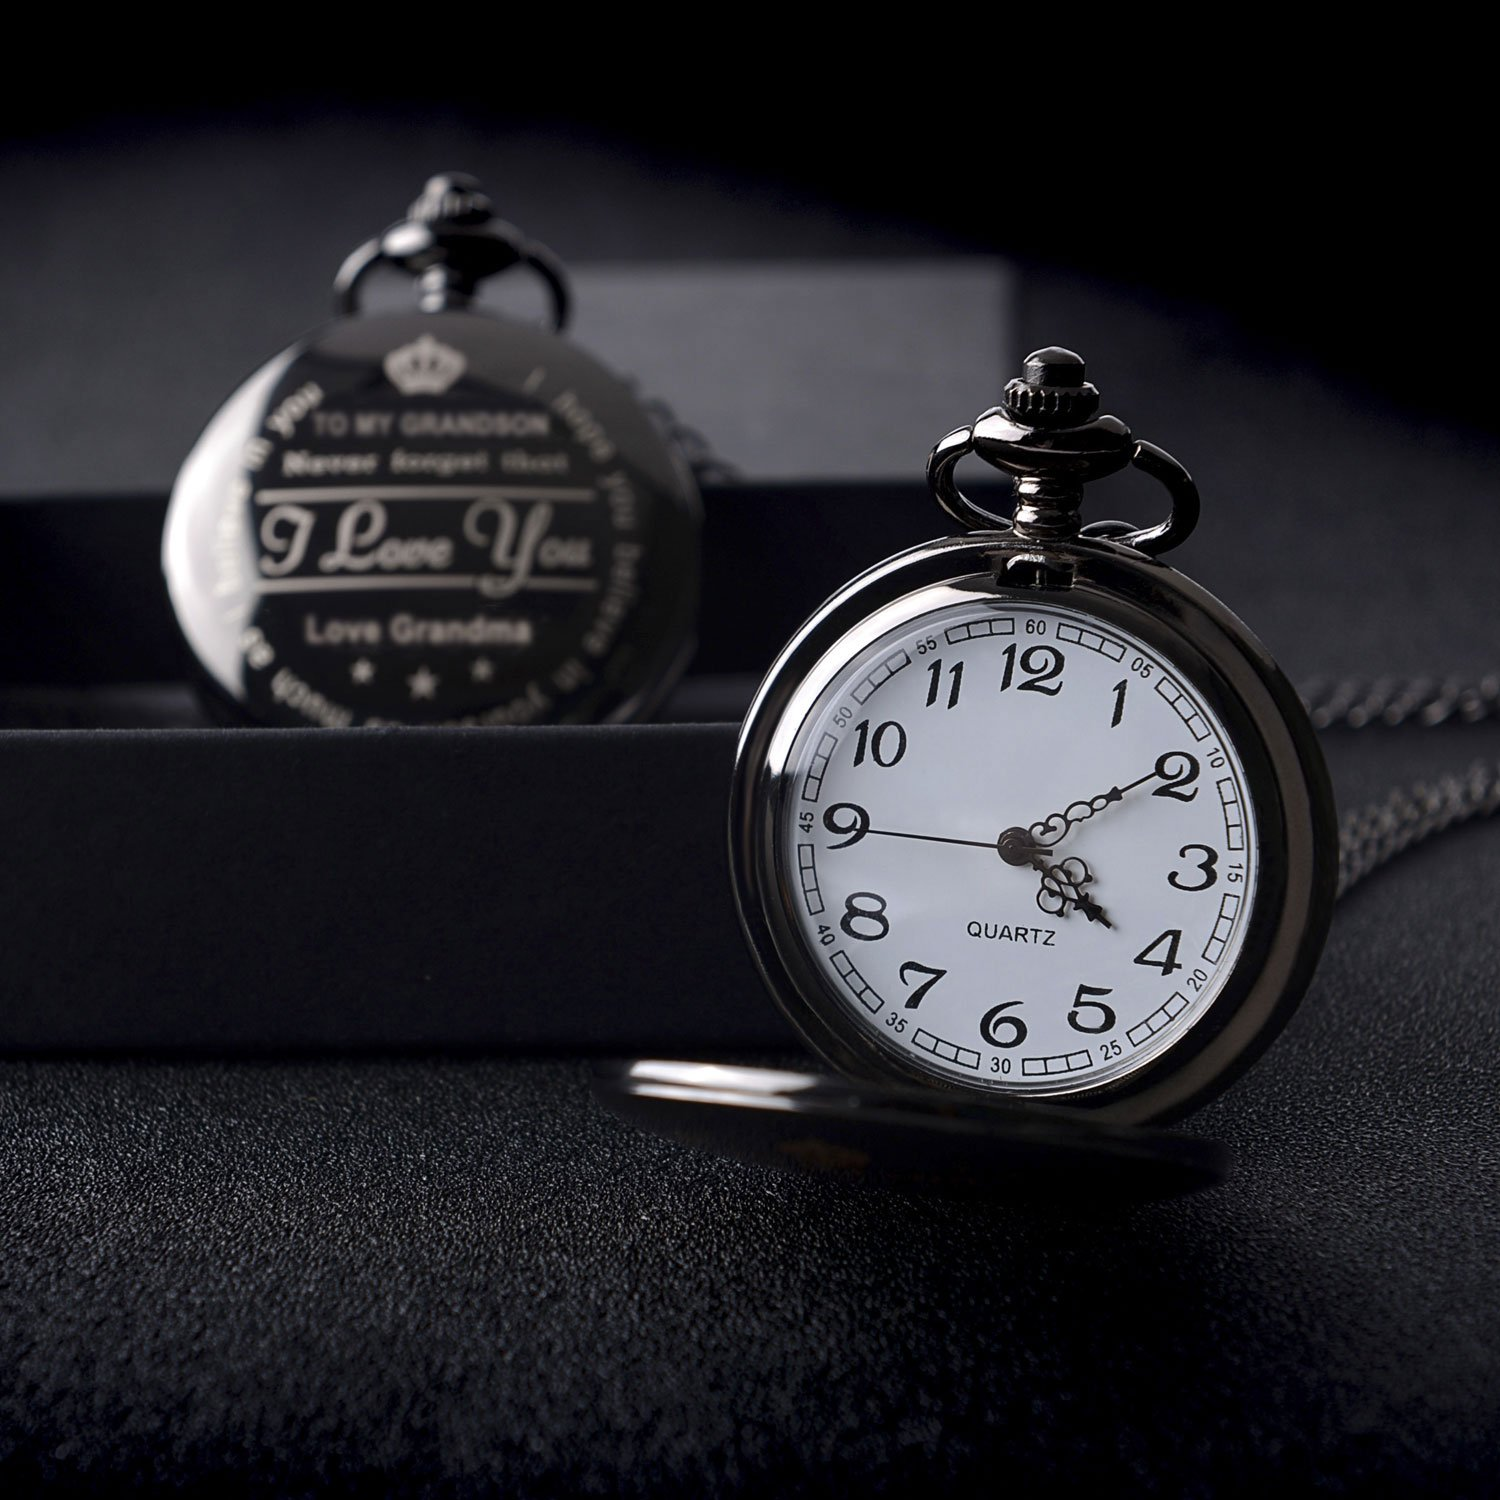 Pocket Watch ''To My GrandSon - Love Grandma(Love Grandpa)''Necklace Chain From Grandparents to Grandson Gifts with Black Gift Box By Qise (Love GrandMa Black) by Qise (Image #5)